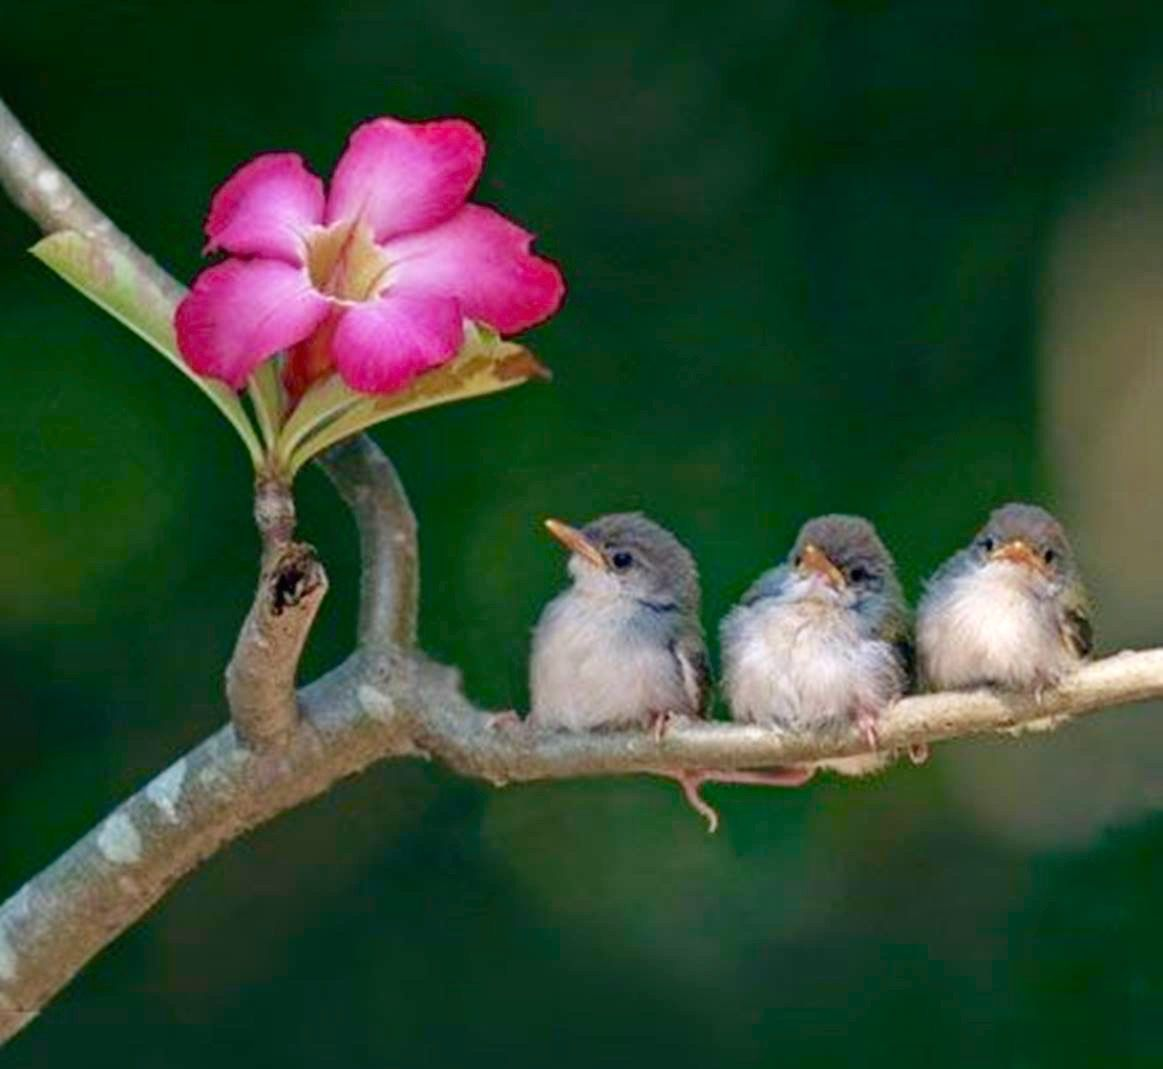 3 birds admiring a flower